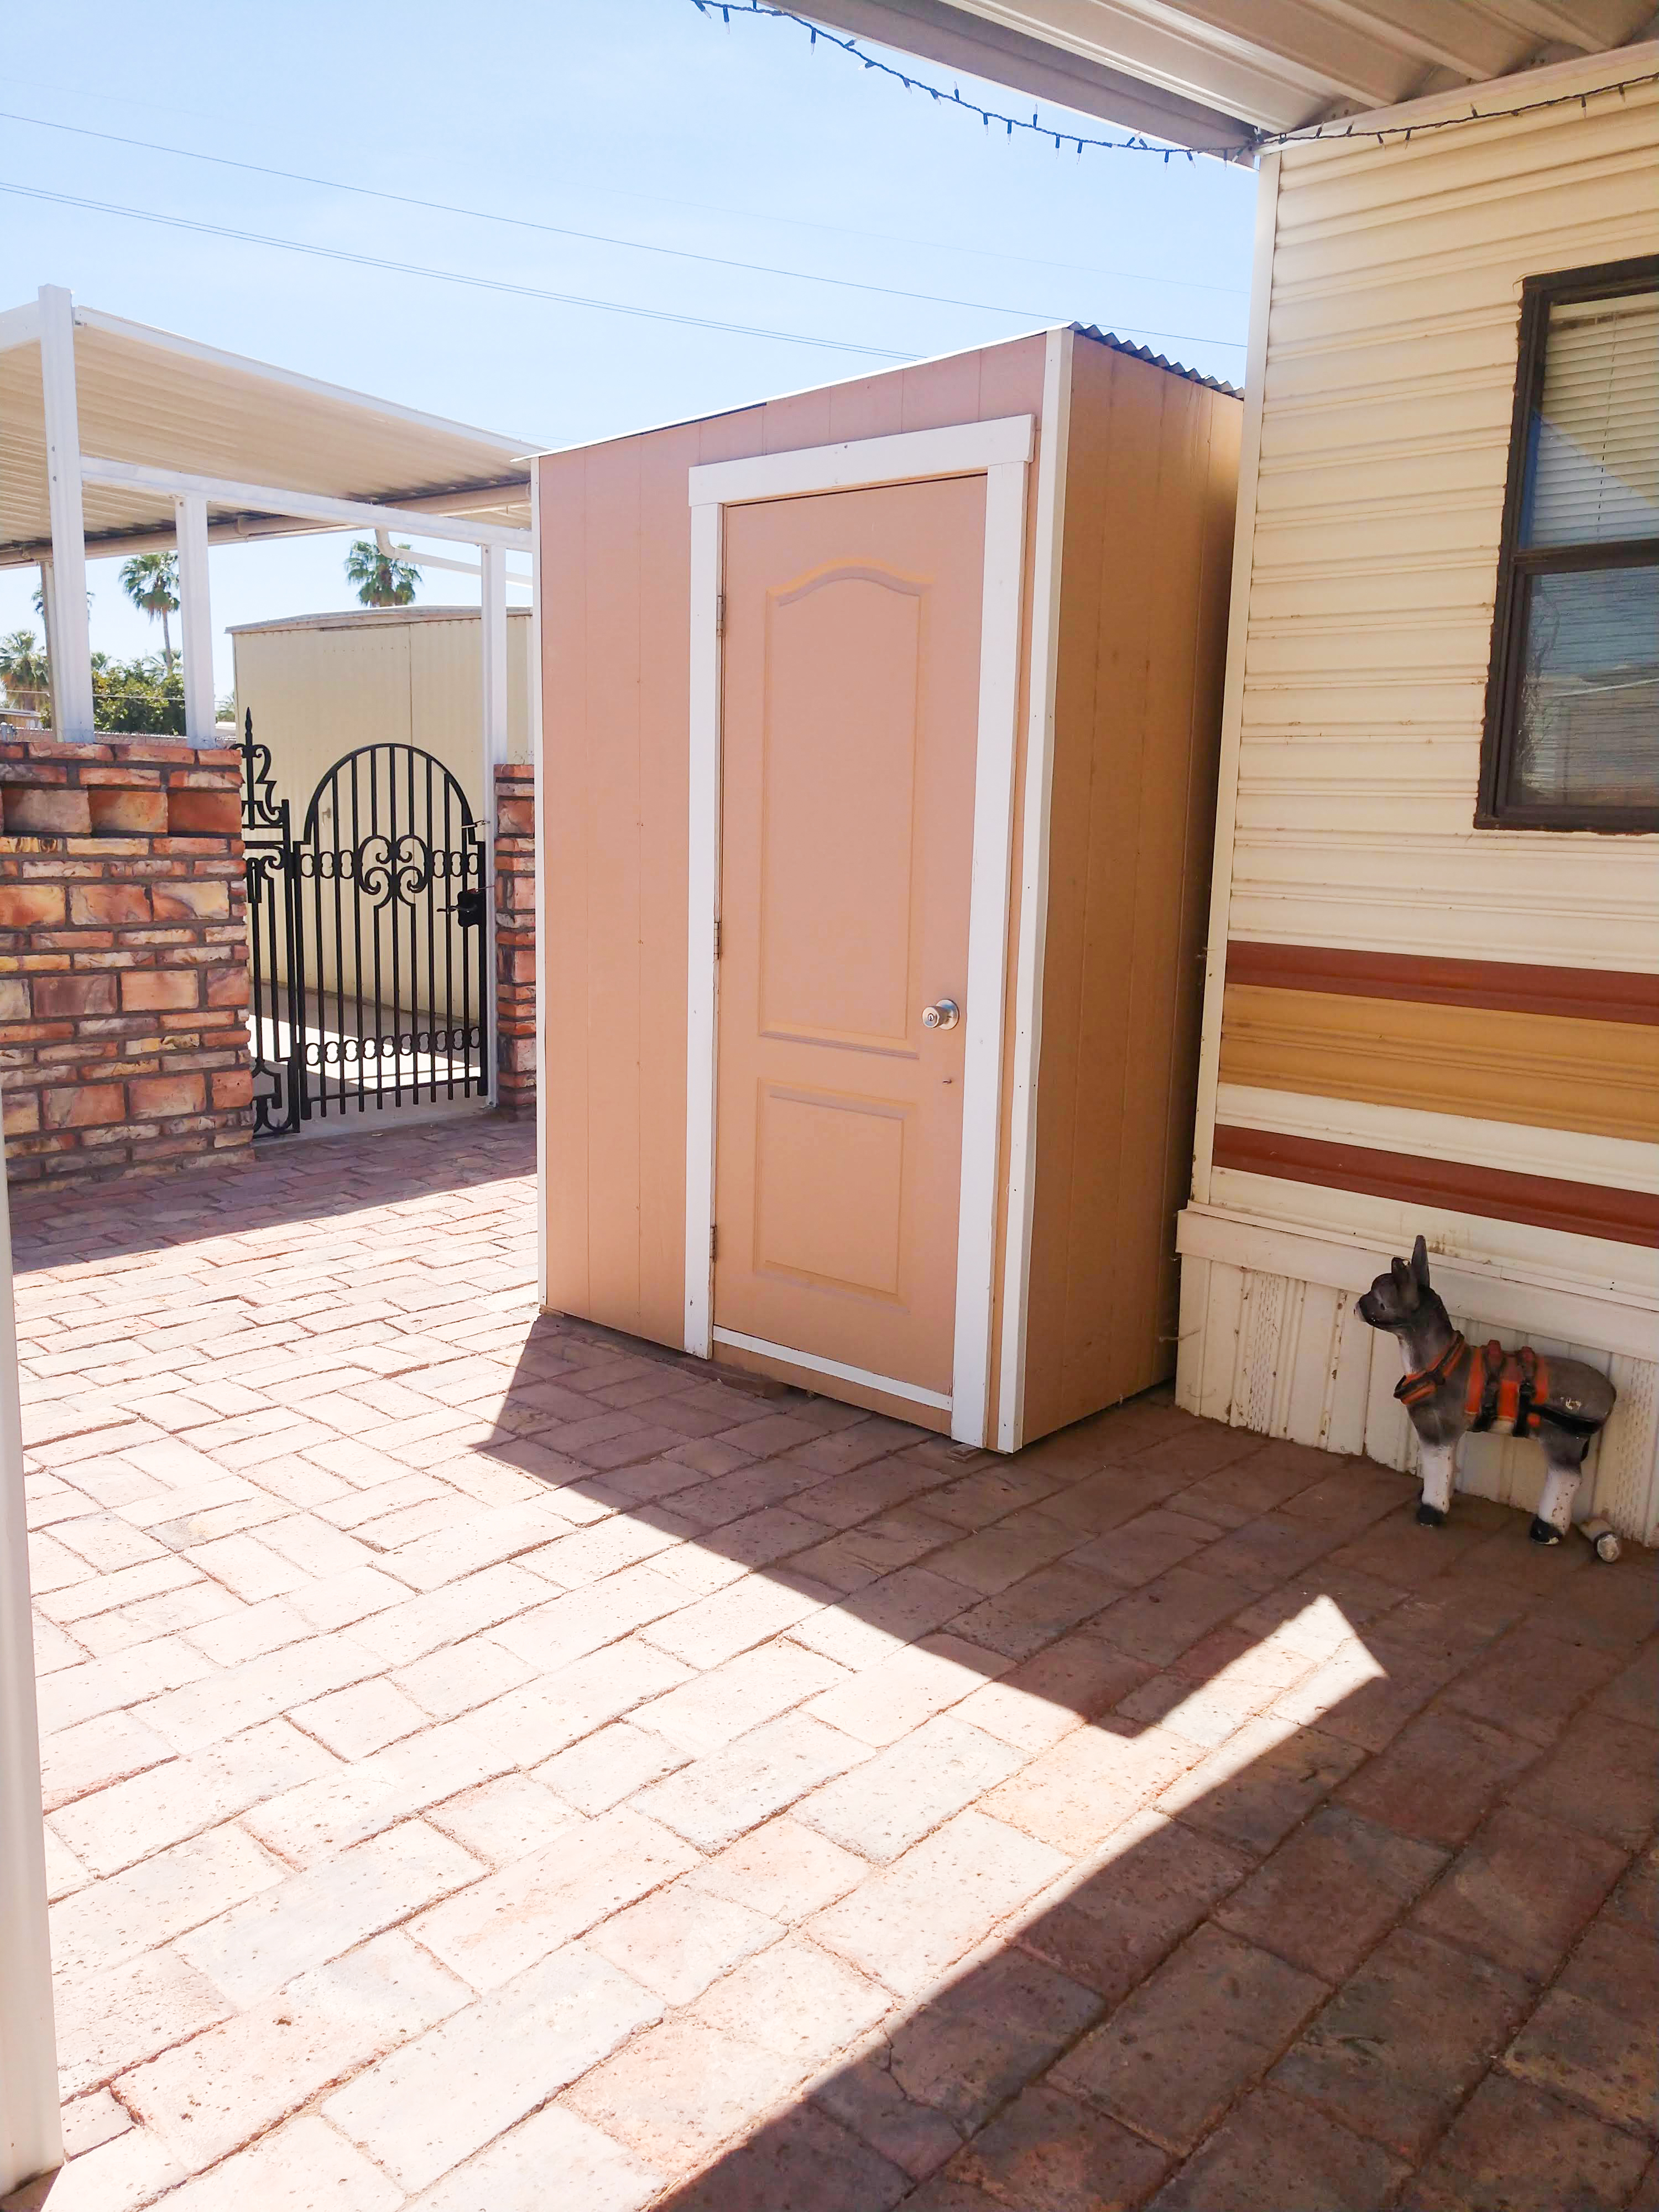 Spacious RV park in Yuma with all amenities